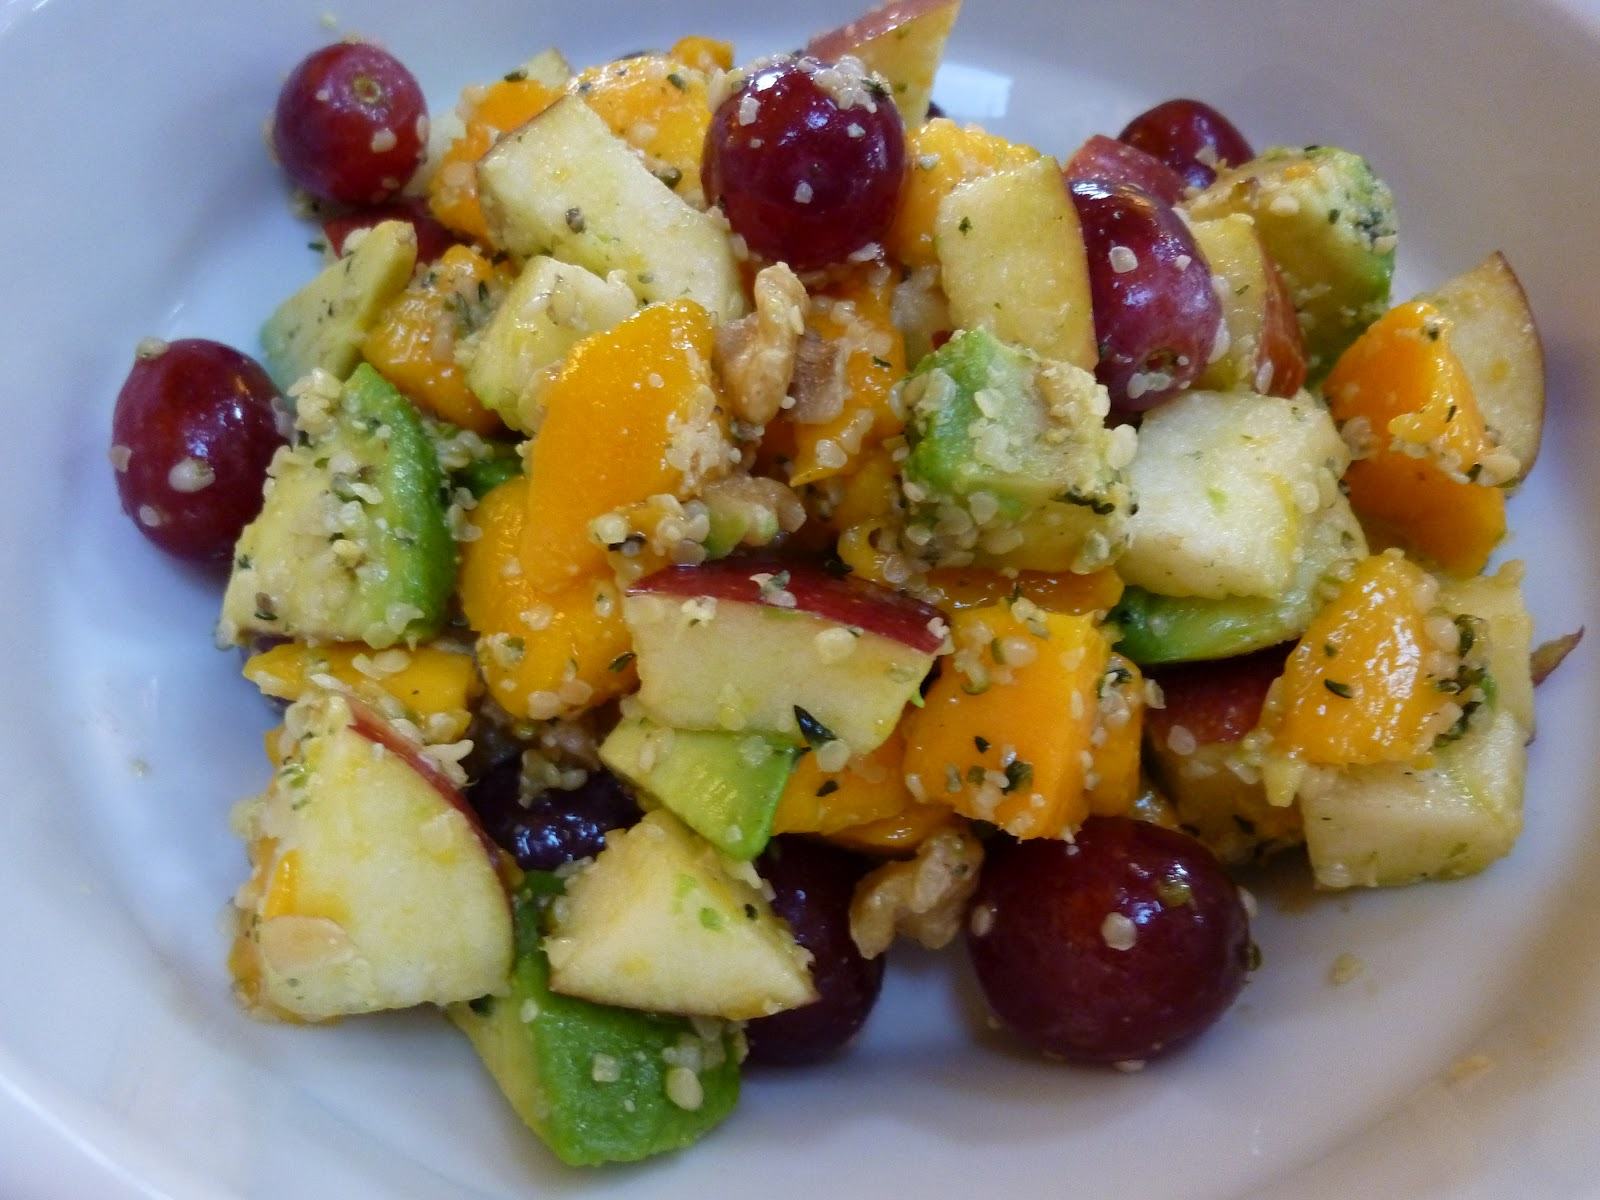 Foods for long life one day raw food cleanse without a blender fruit salad with mango apple grapes avocado walnuts and hemp seeds forumfinder Images